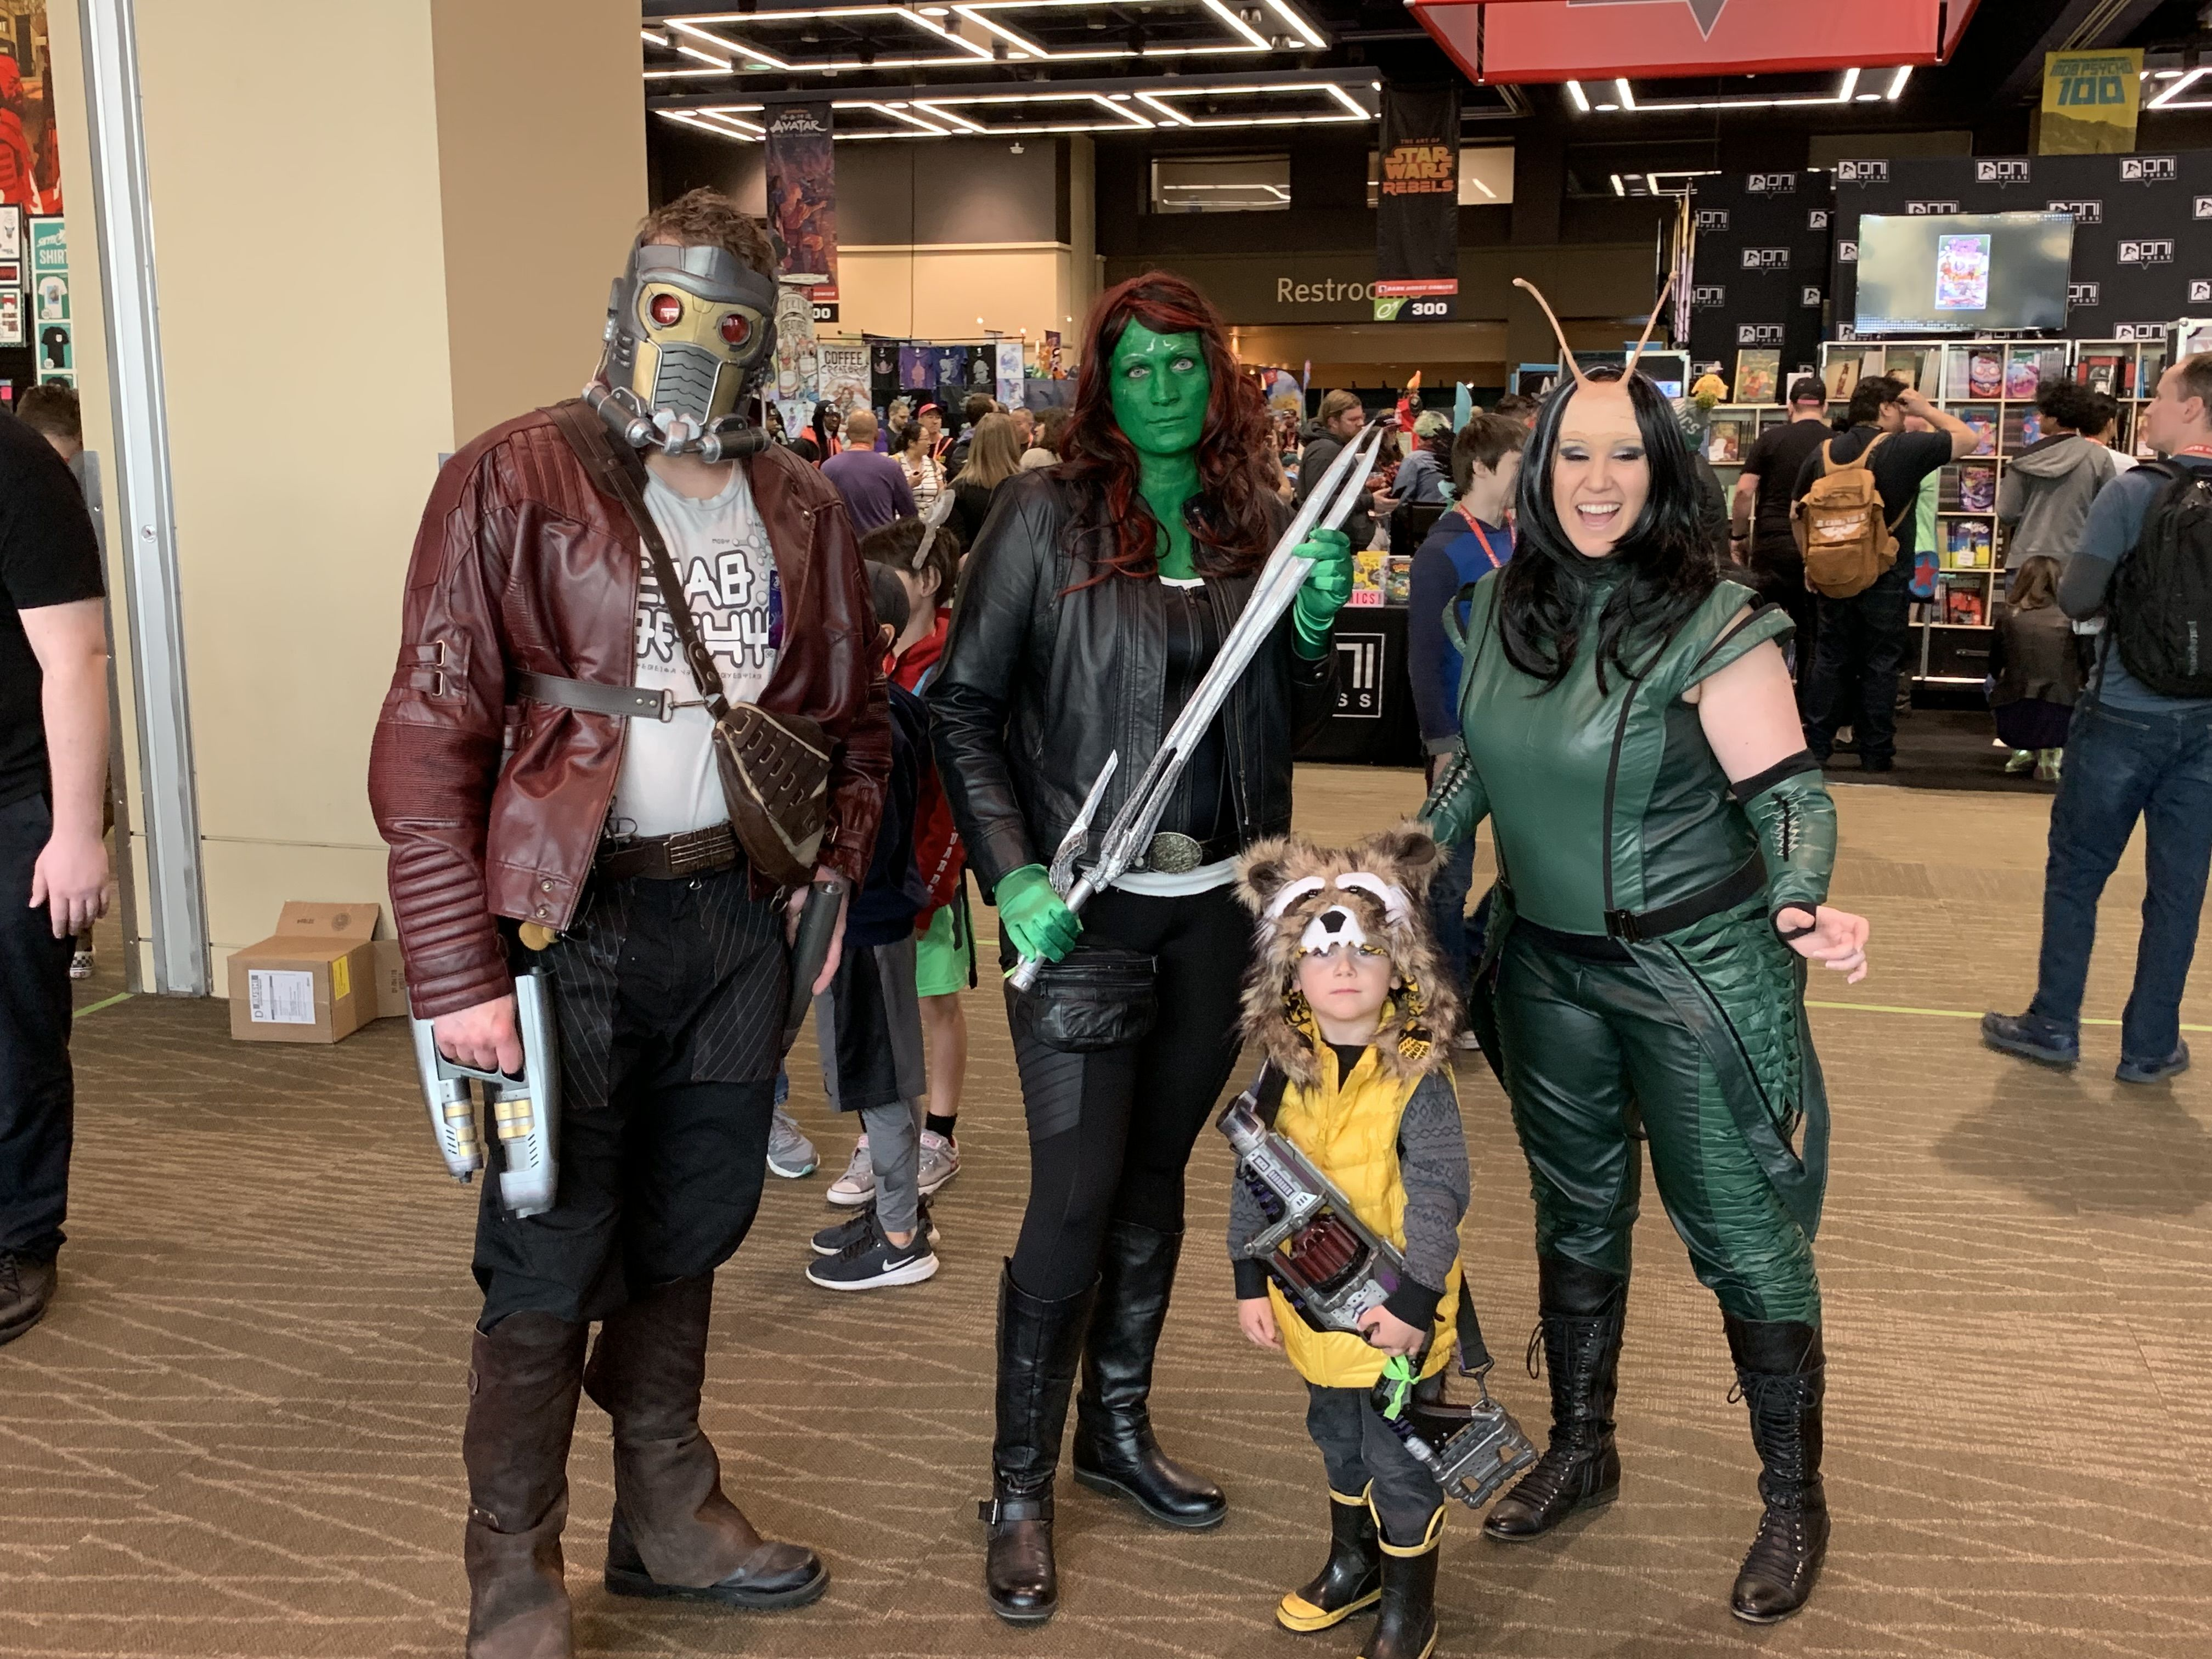 ECCC 2019 Day 4 cosplay gallery